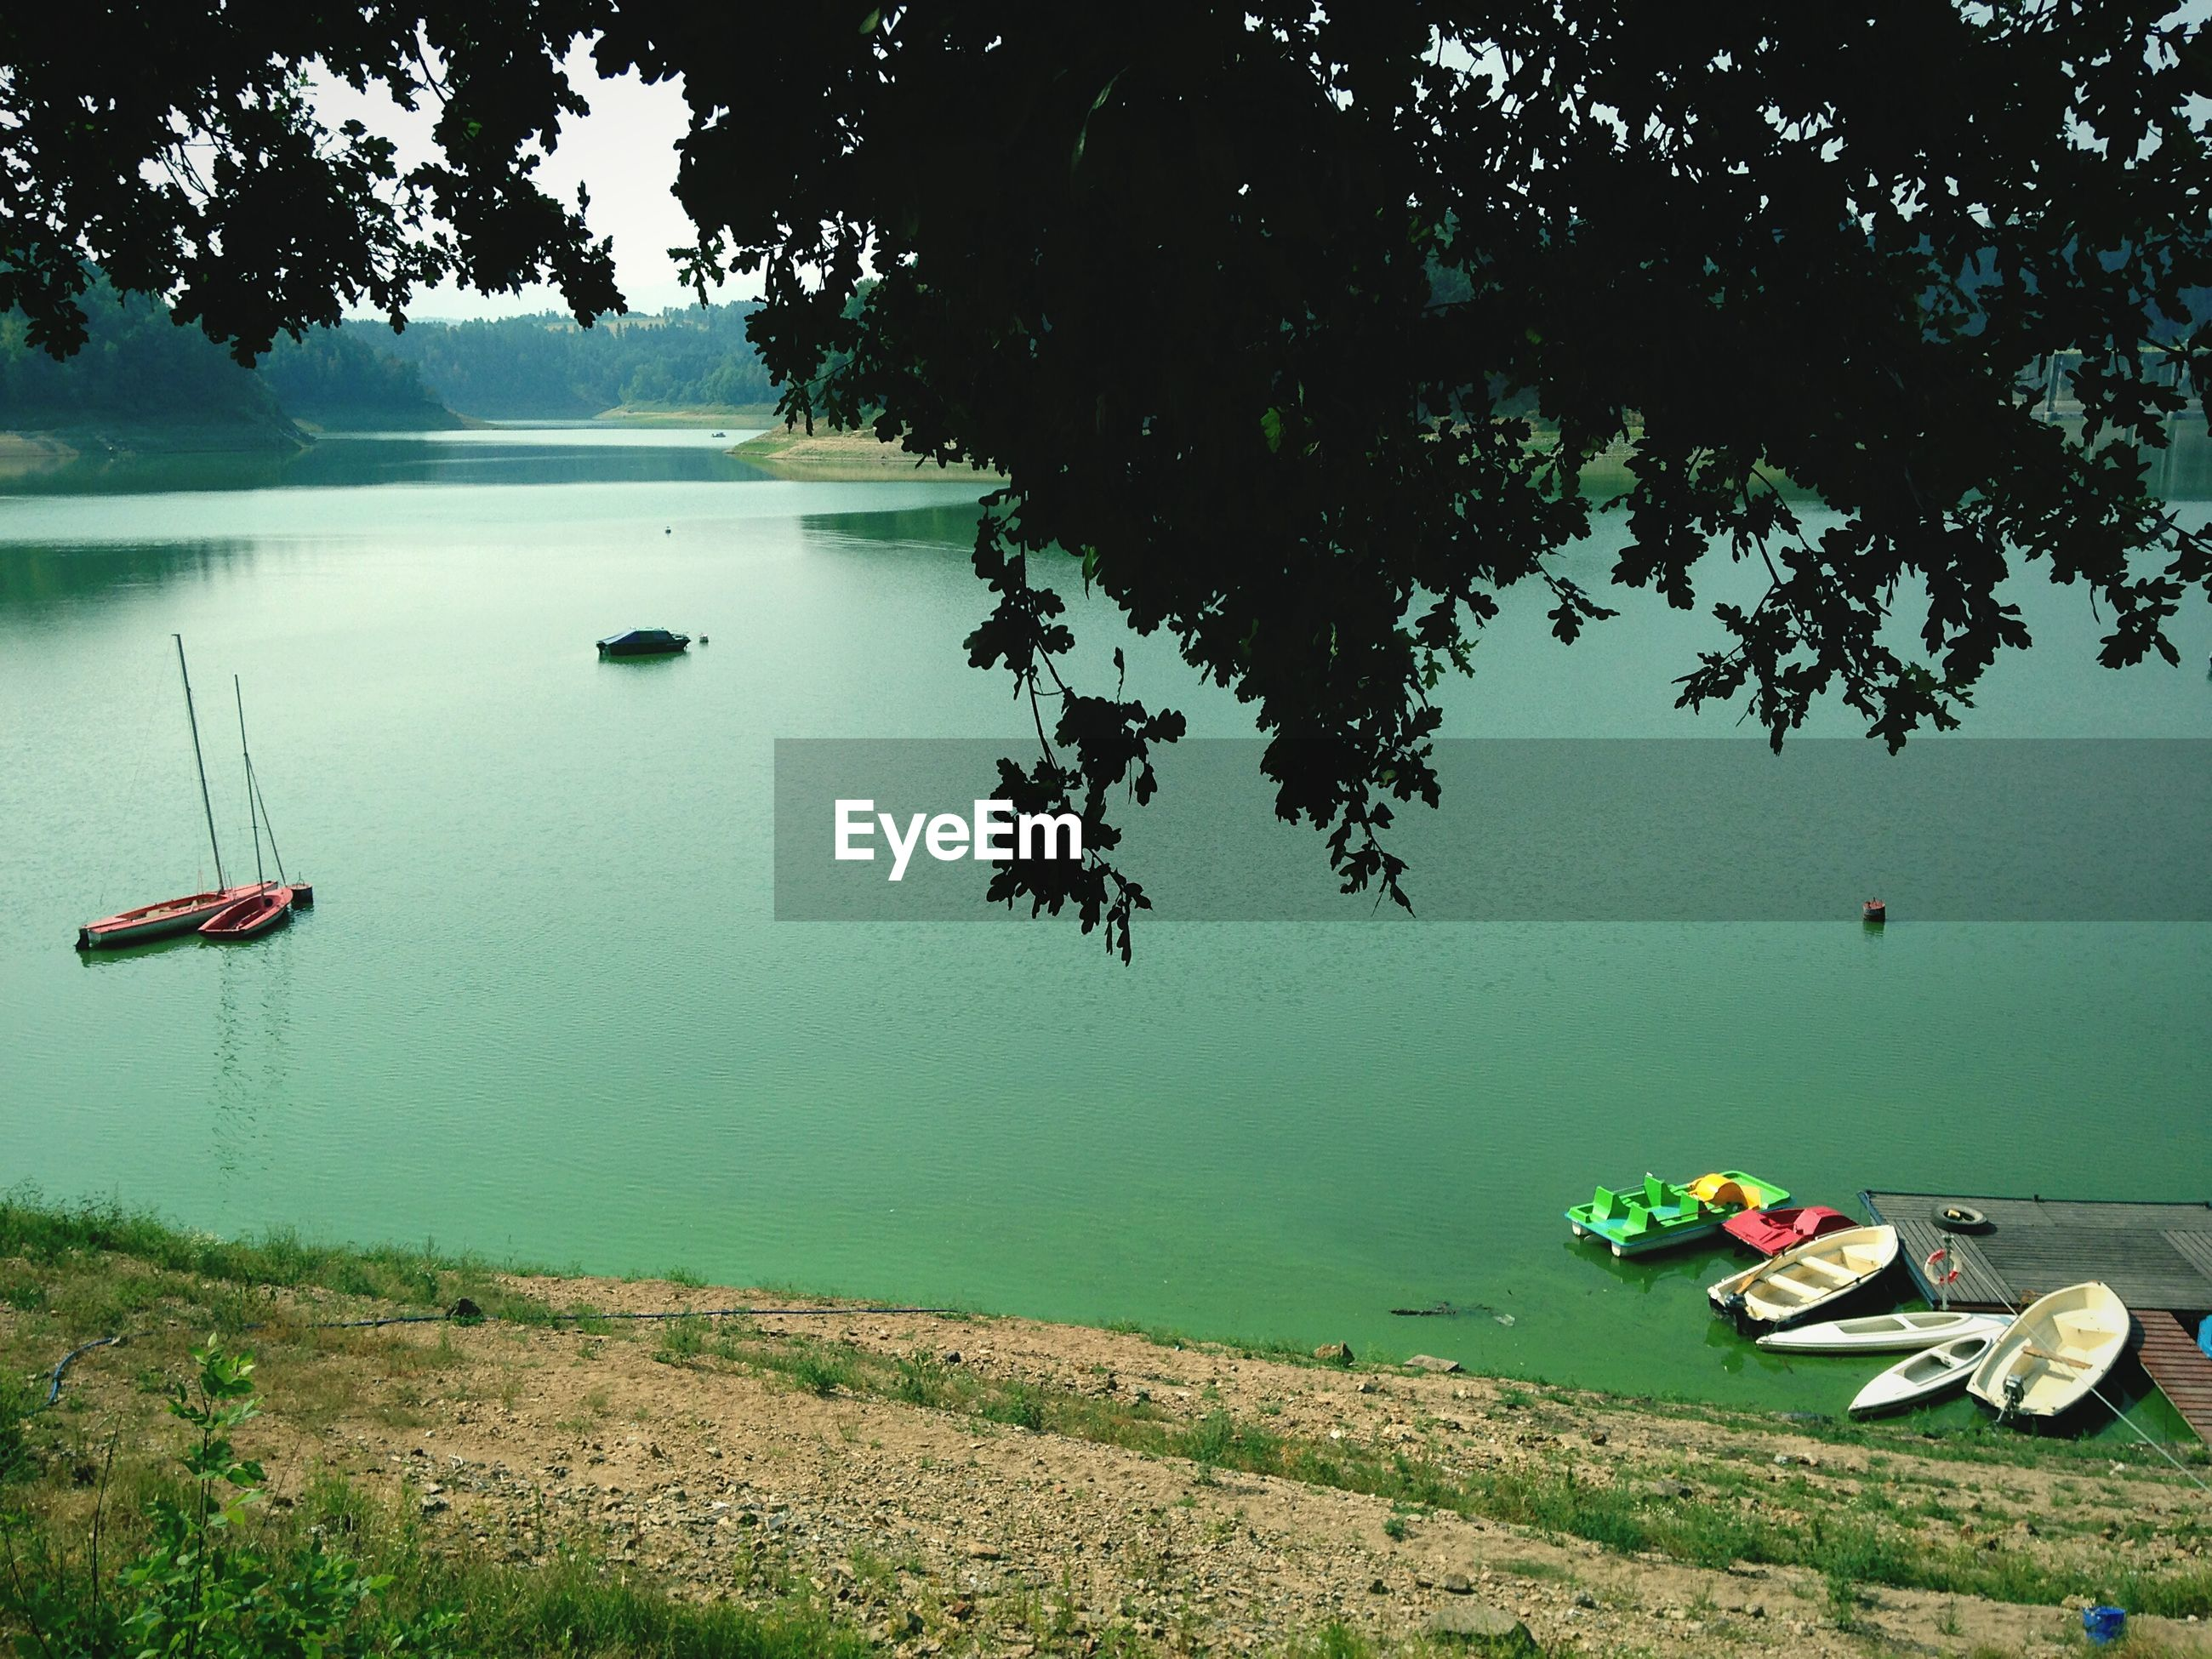 High angle view of lake with tree branch in foreground